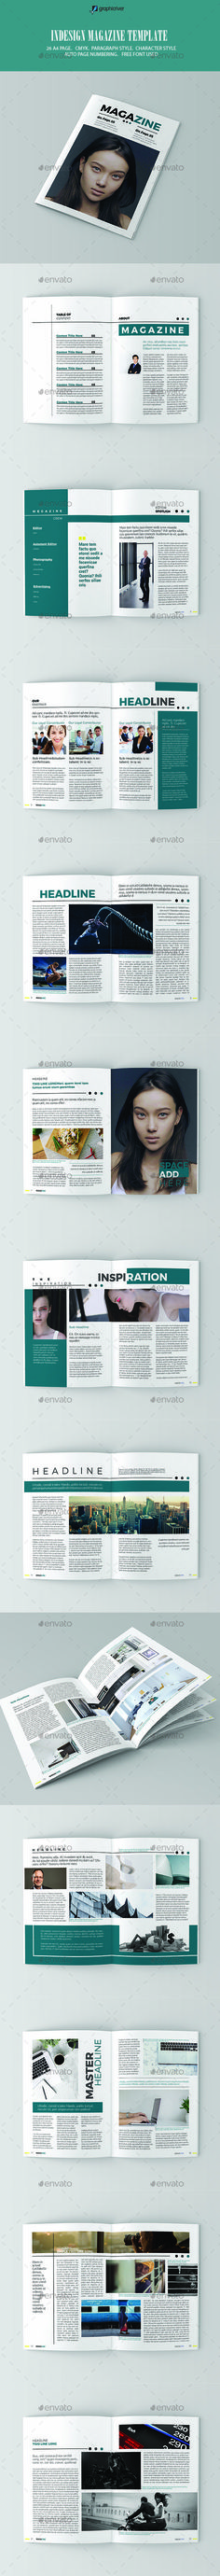 InDesign Magazine Template 01 - Magazines Print Templates Download here : https://graphicriver.net/item/indesign-magazine-template-01/19514788?s_rank=24&ref=Al-fatih